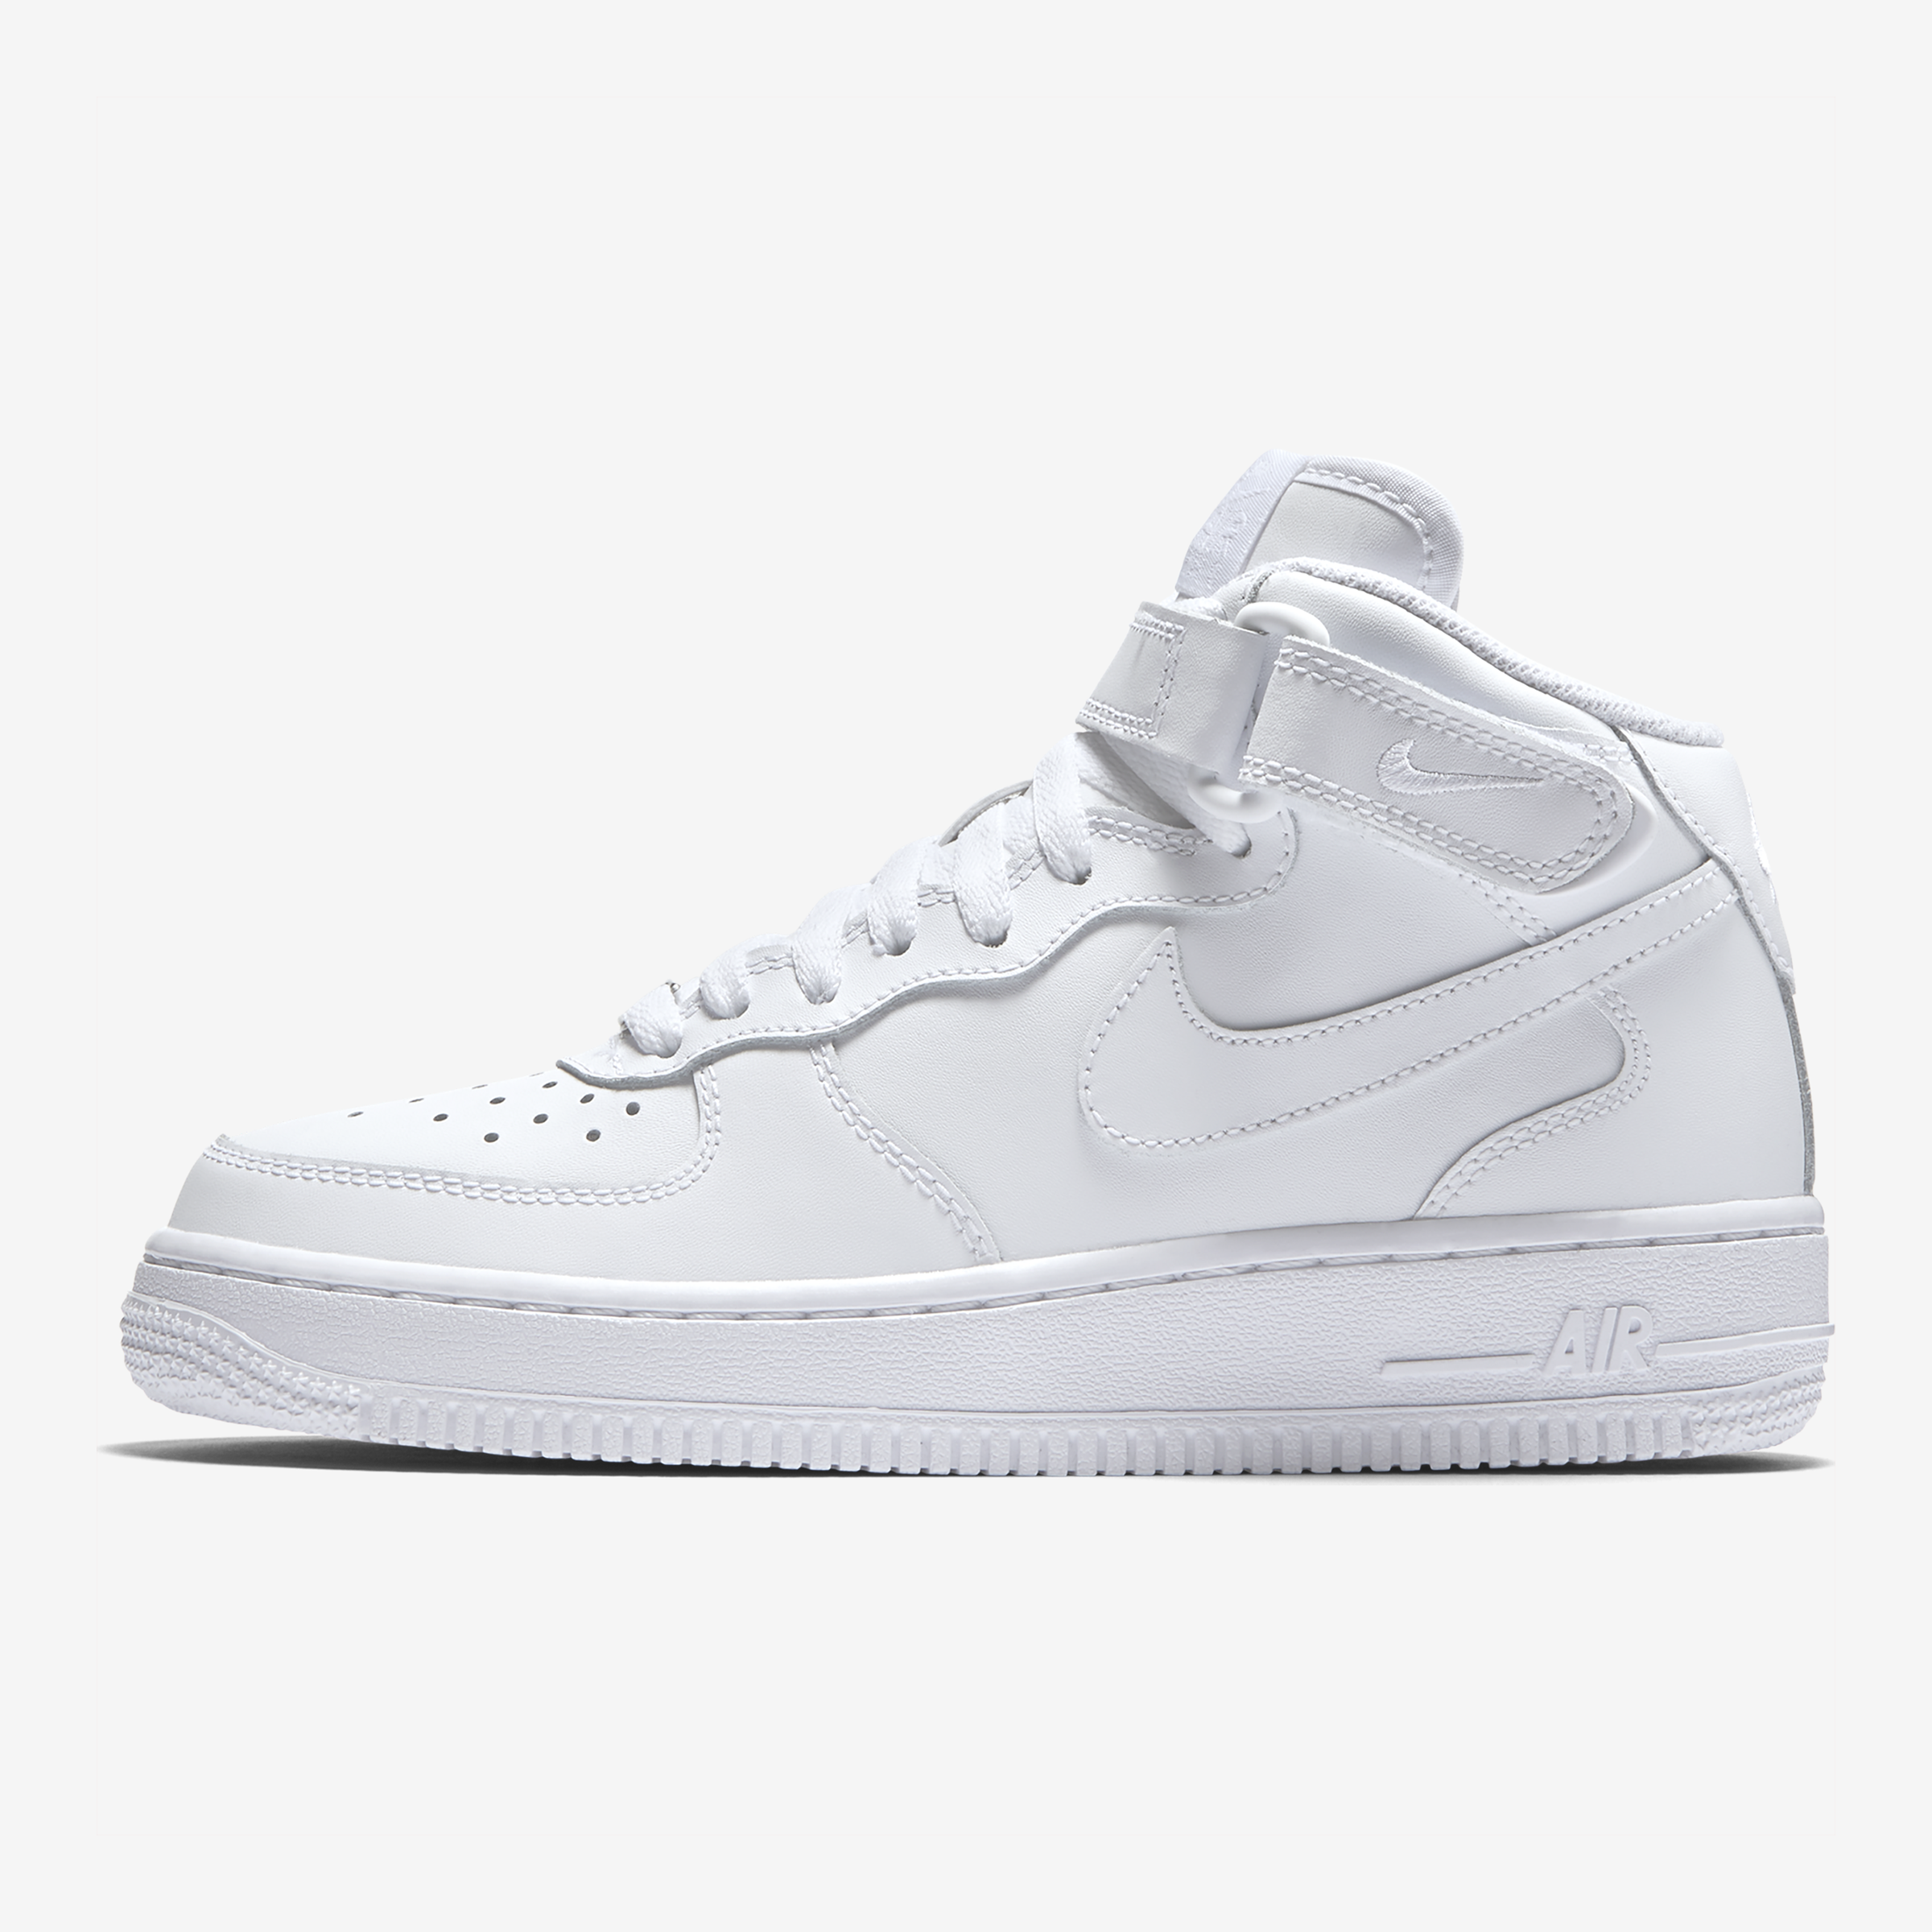 Nike Air Force 1 Mid 06 Available In Store Only $85.00